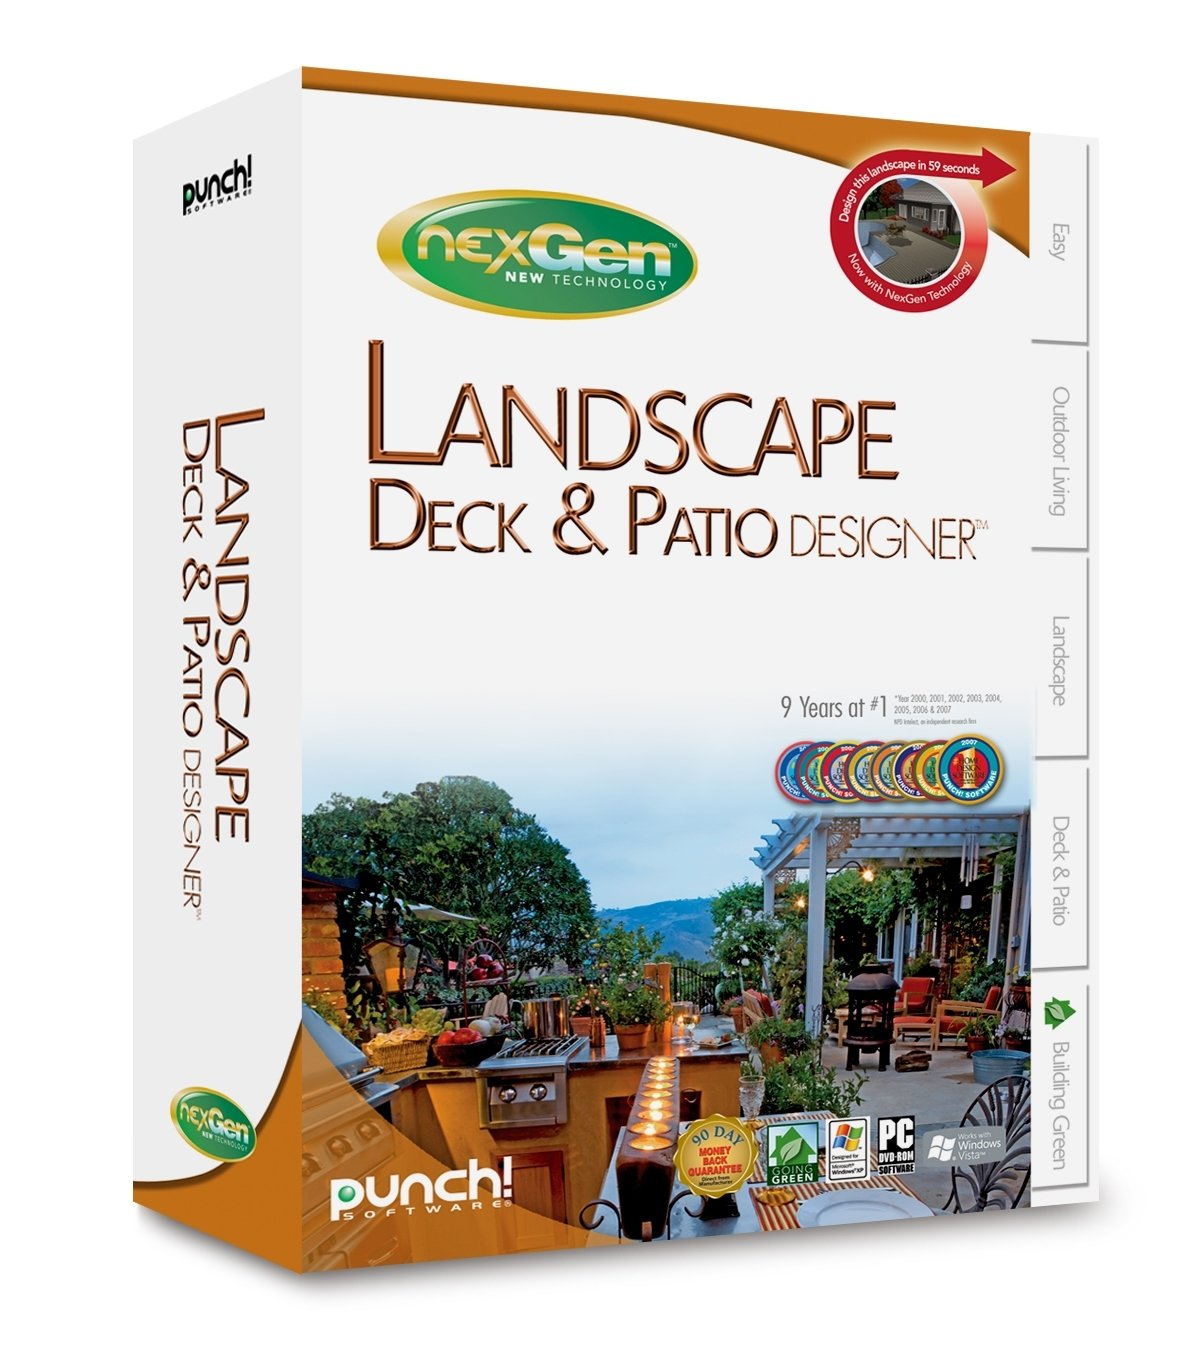 Beautiful Amazon.com: Punch! Landscape, Deck, U0026 Patio Designer With NexGen  Technology: Software